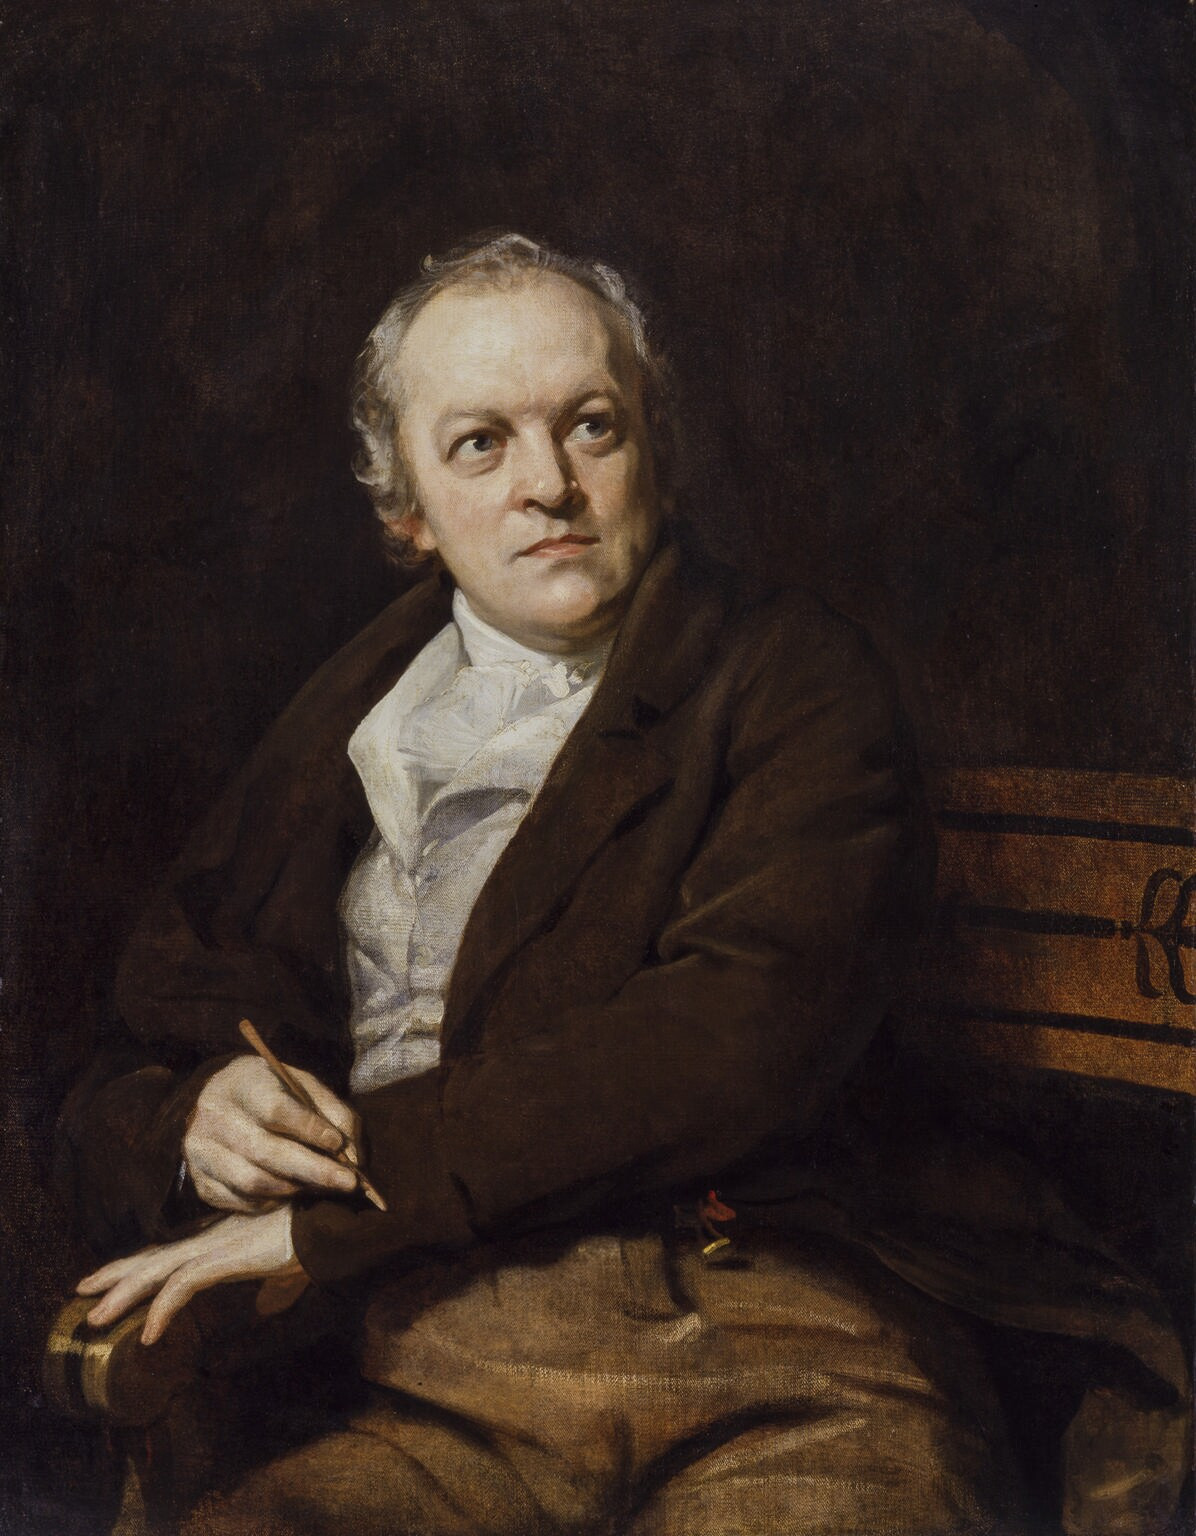 William Blake by Thomas Phillips